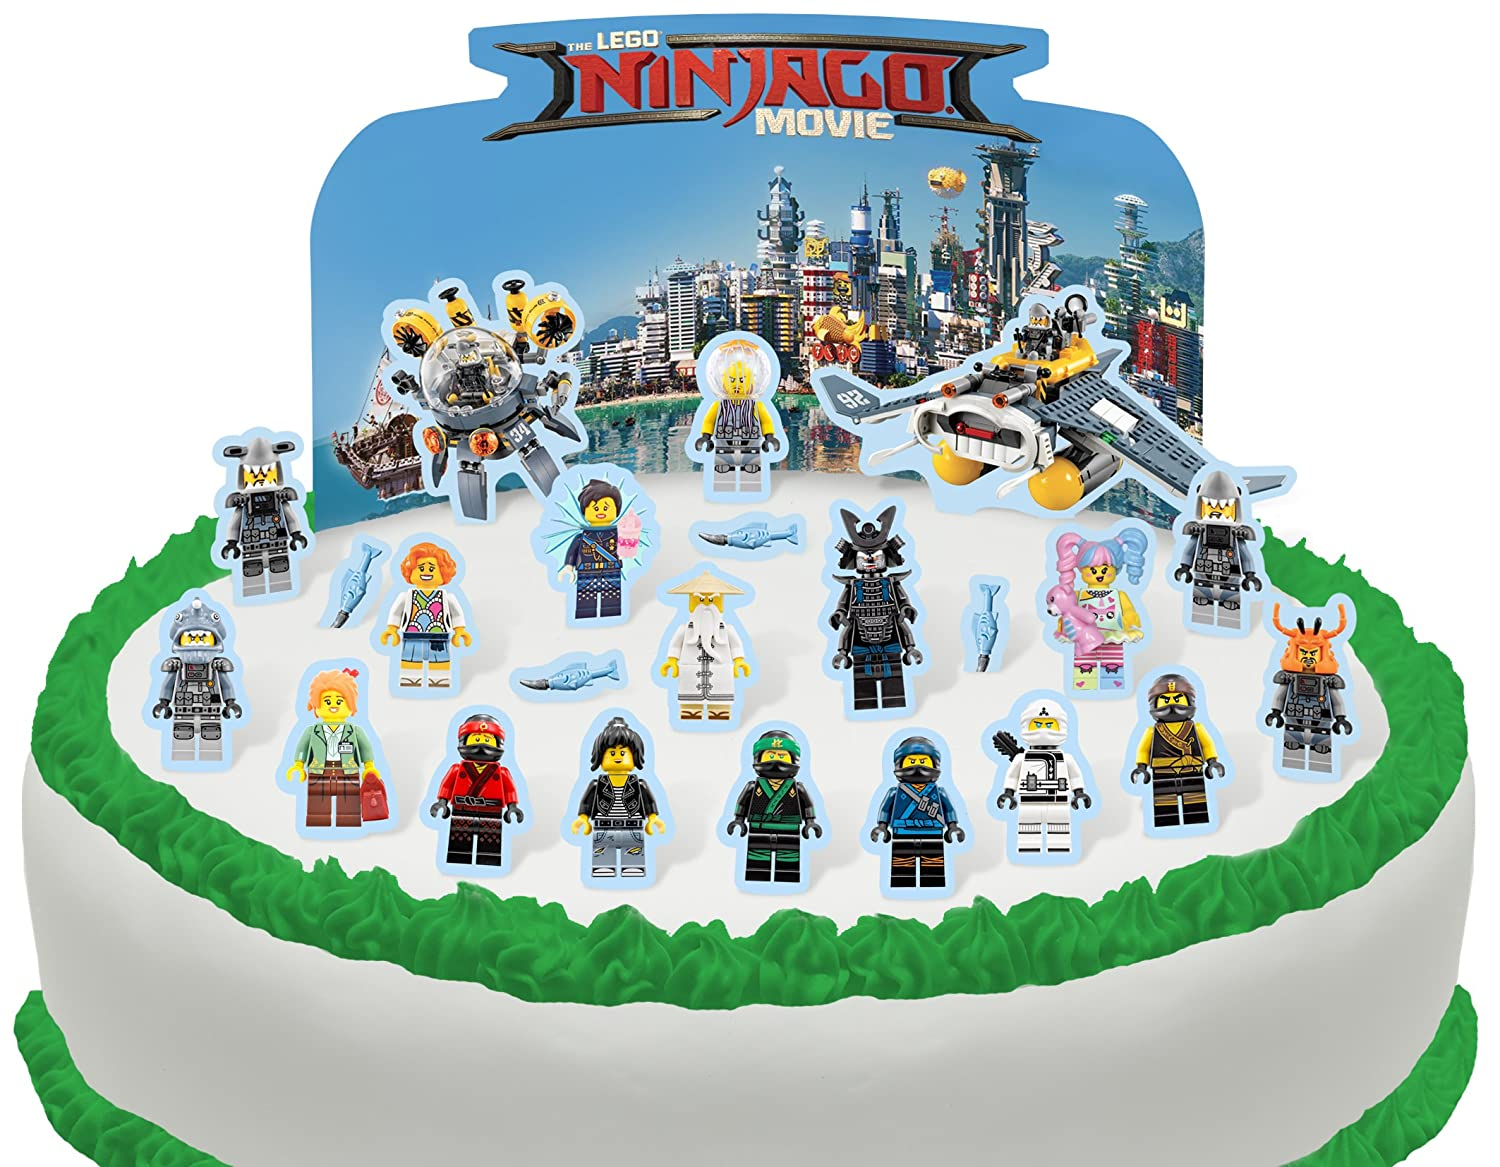 Phenomenal Cakeshop Pre Cut Lego Ninjago Movie Edible Cake Scene 24 Pieces Funny Birthday Cards Online Inifofree Goldxyz